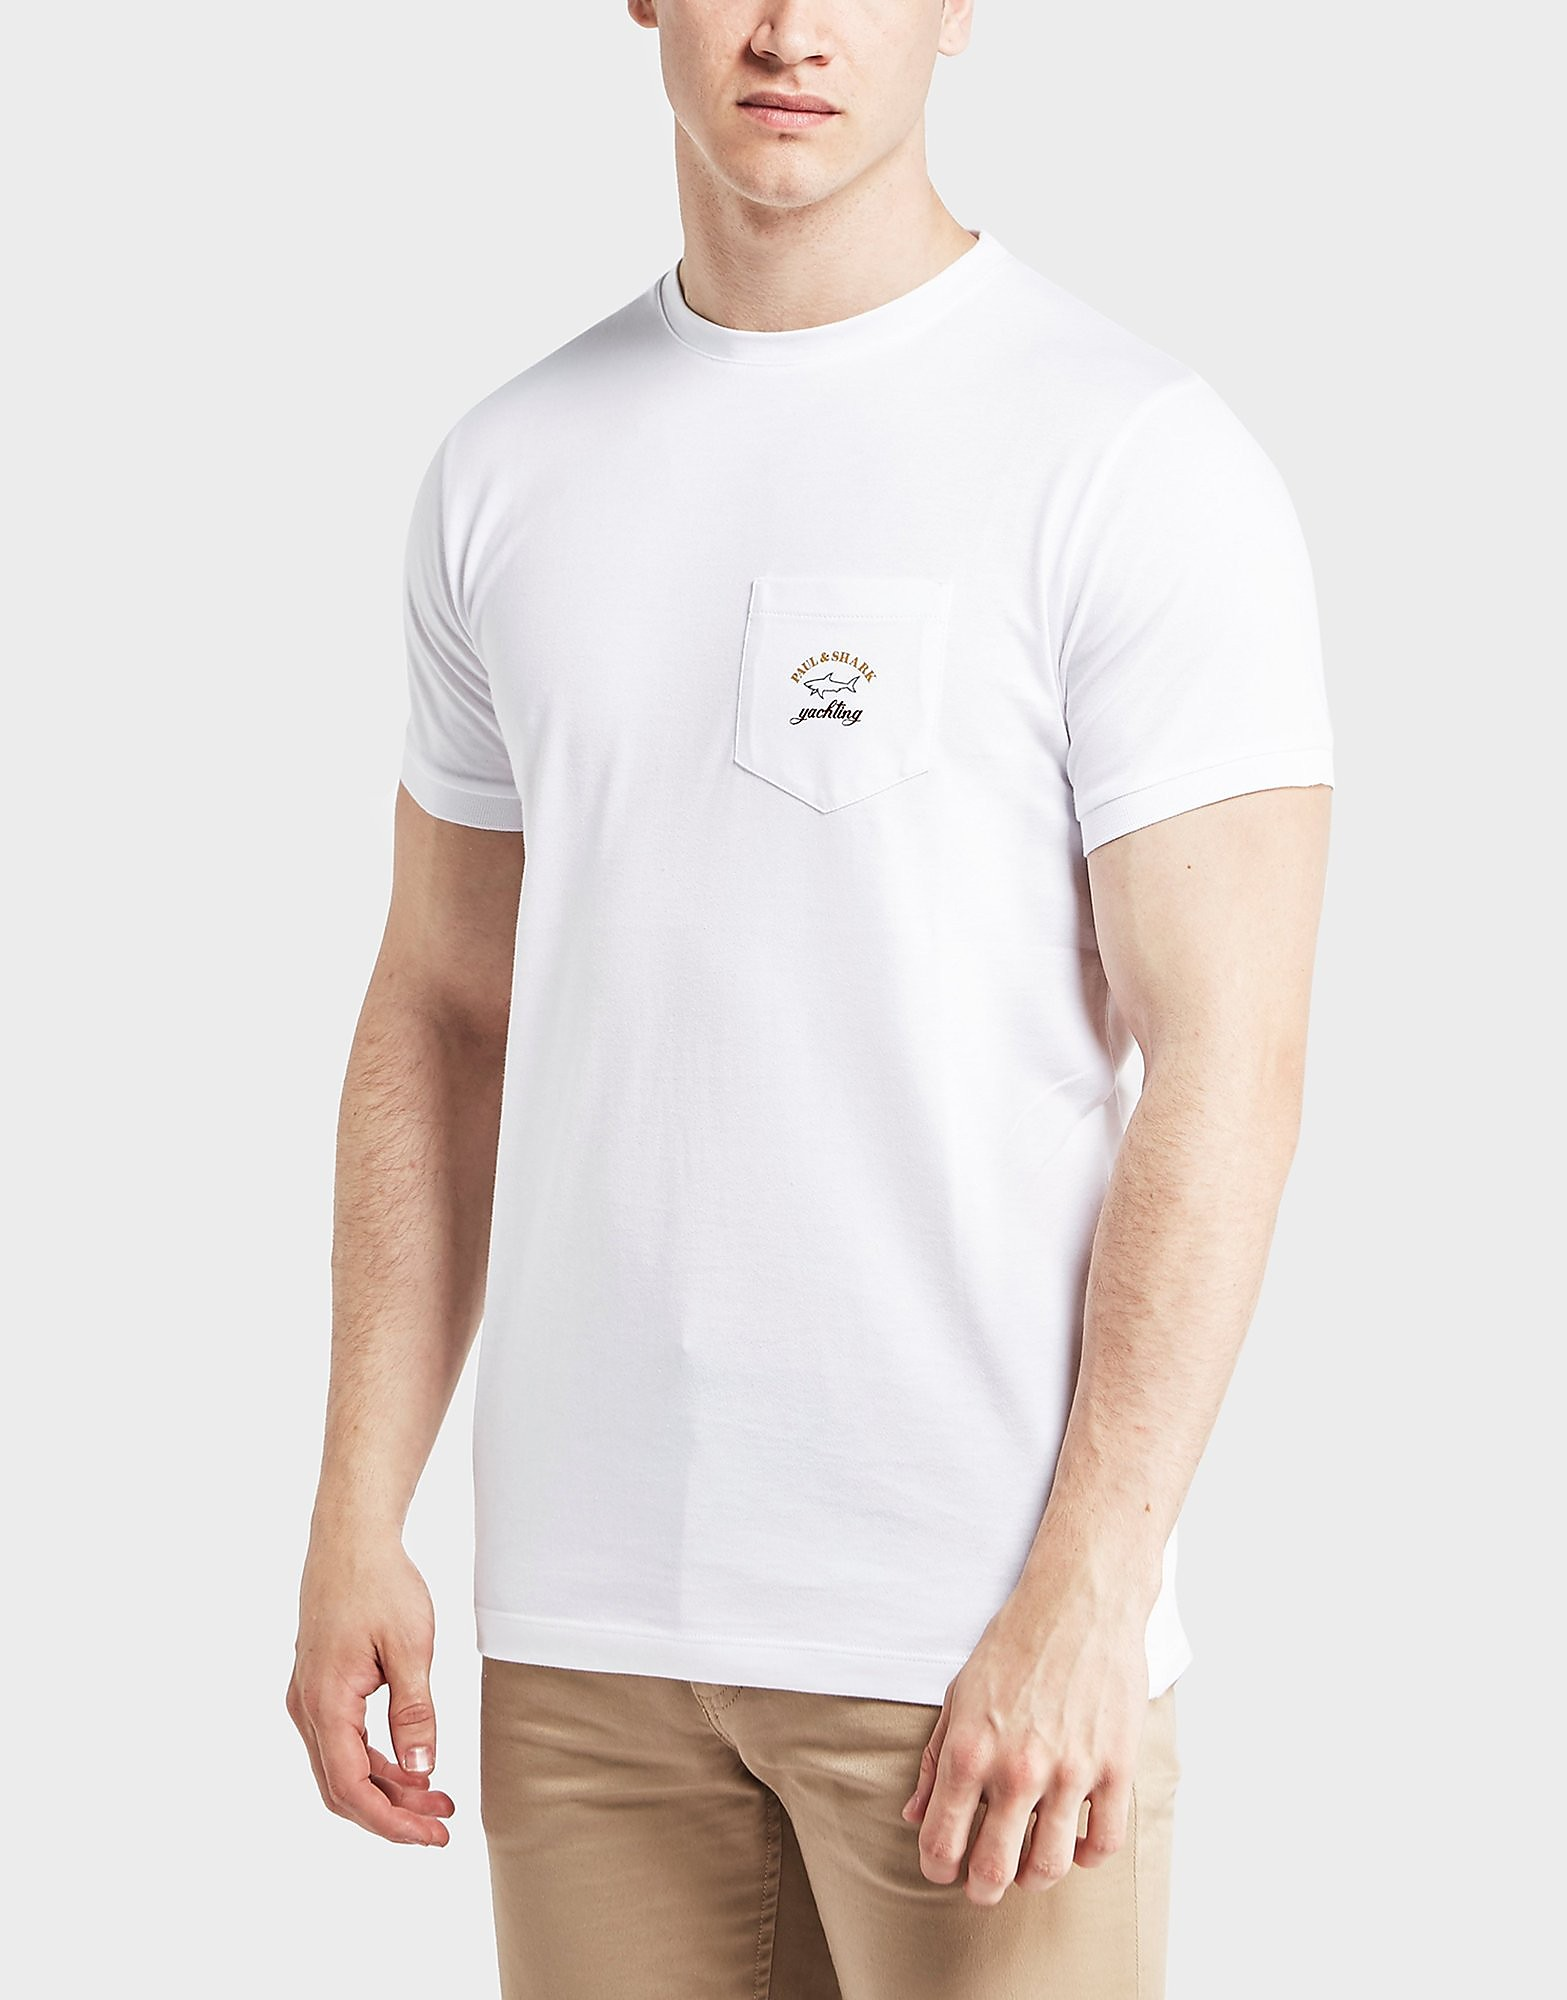 Paul and Shark Pocket Short Sleeve T-Shirt